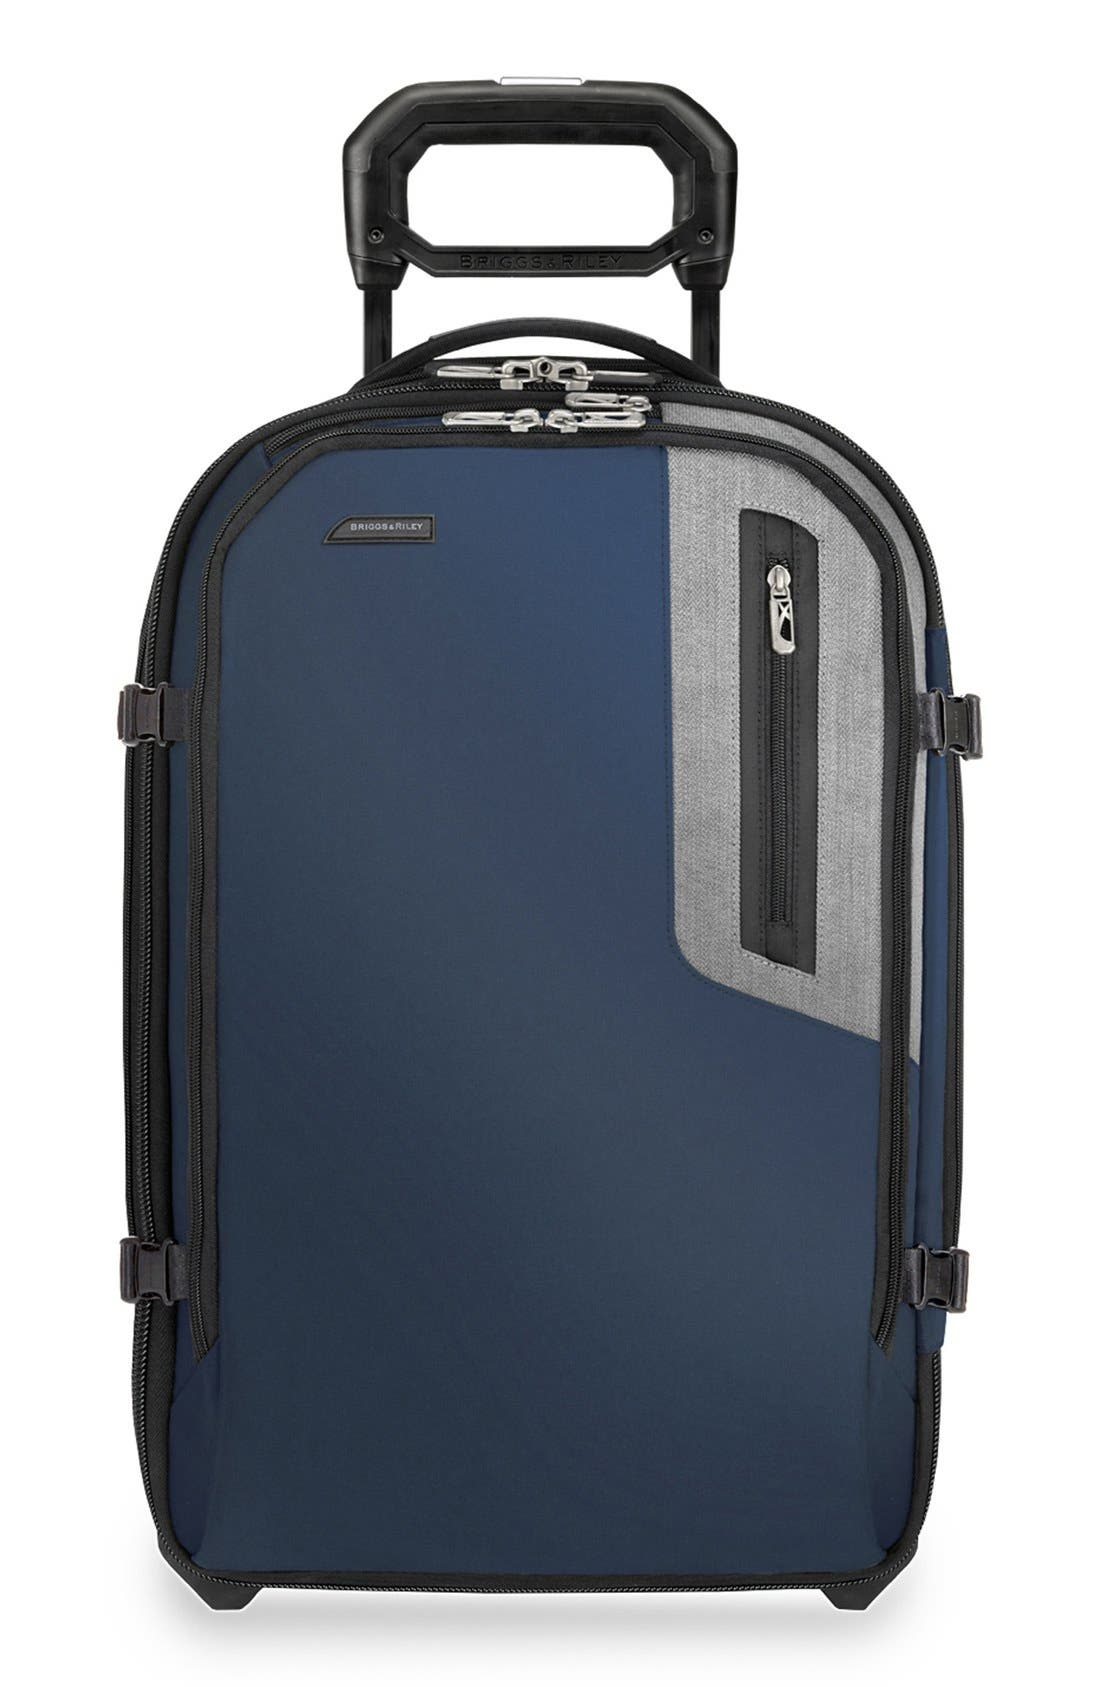 BRIGGS & RILEY BRX - Explore Domestic Wheeled Carry-On